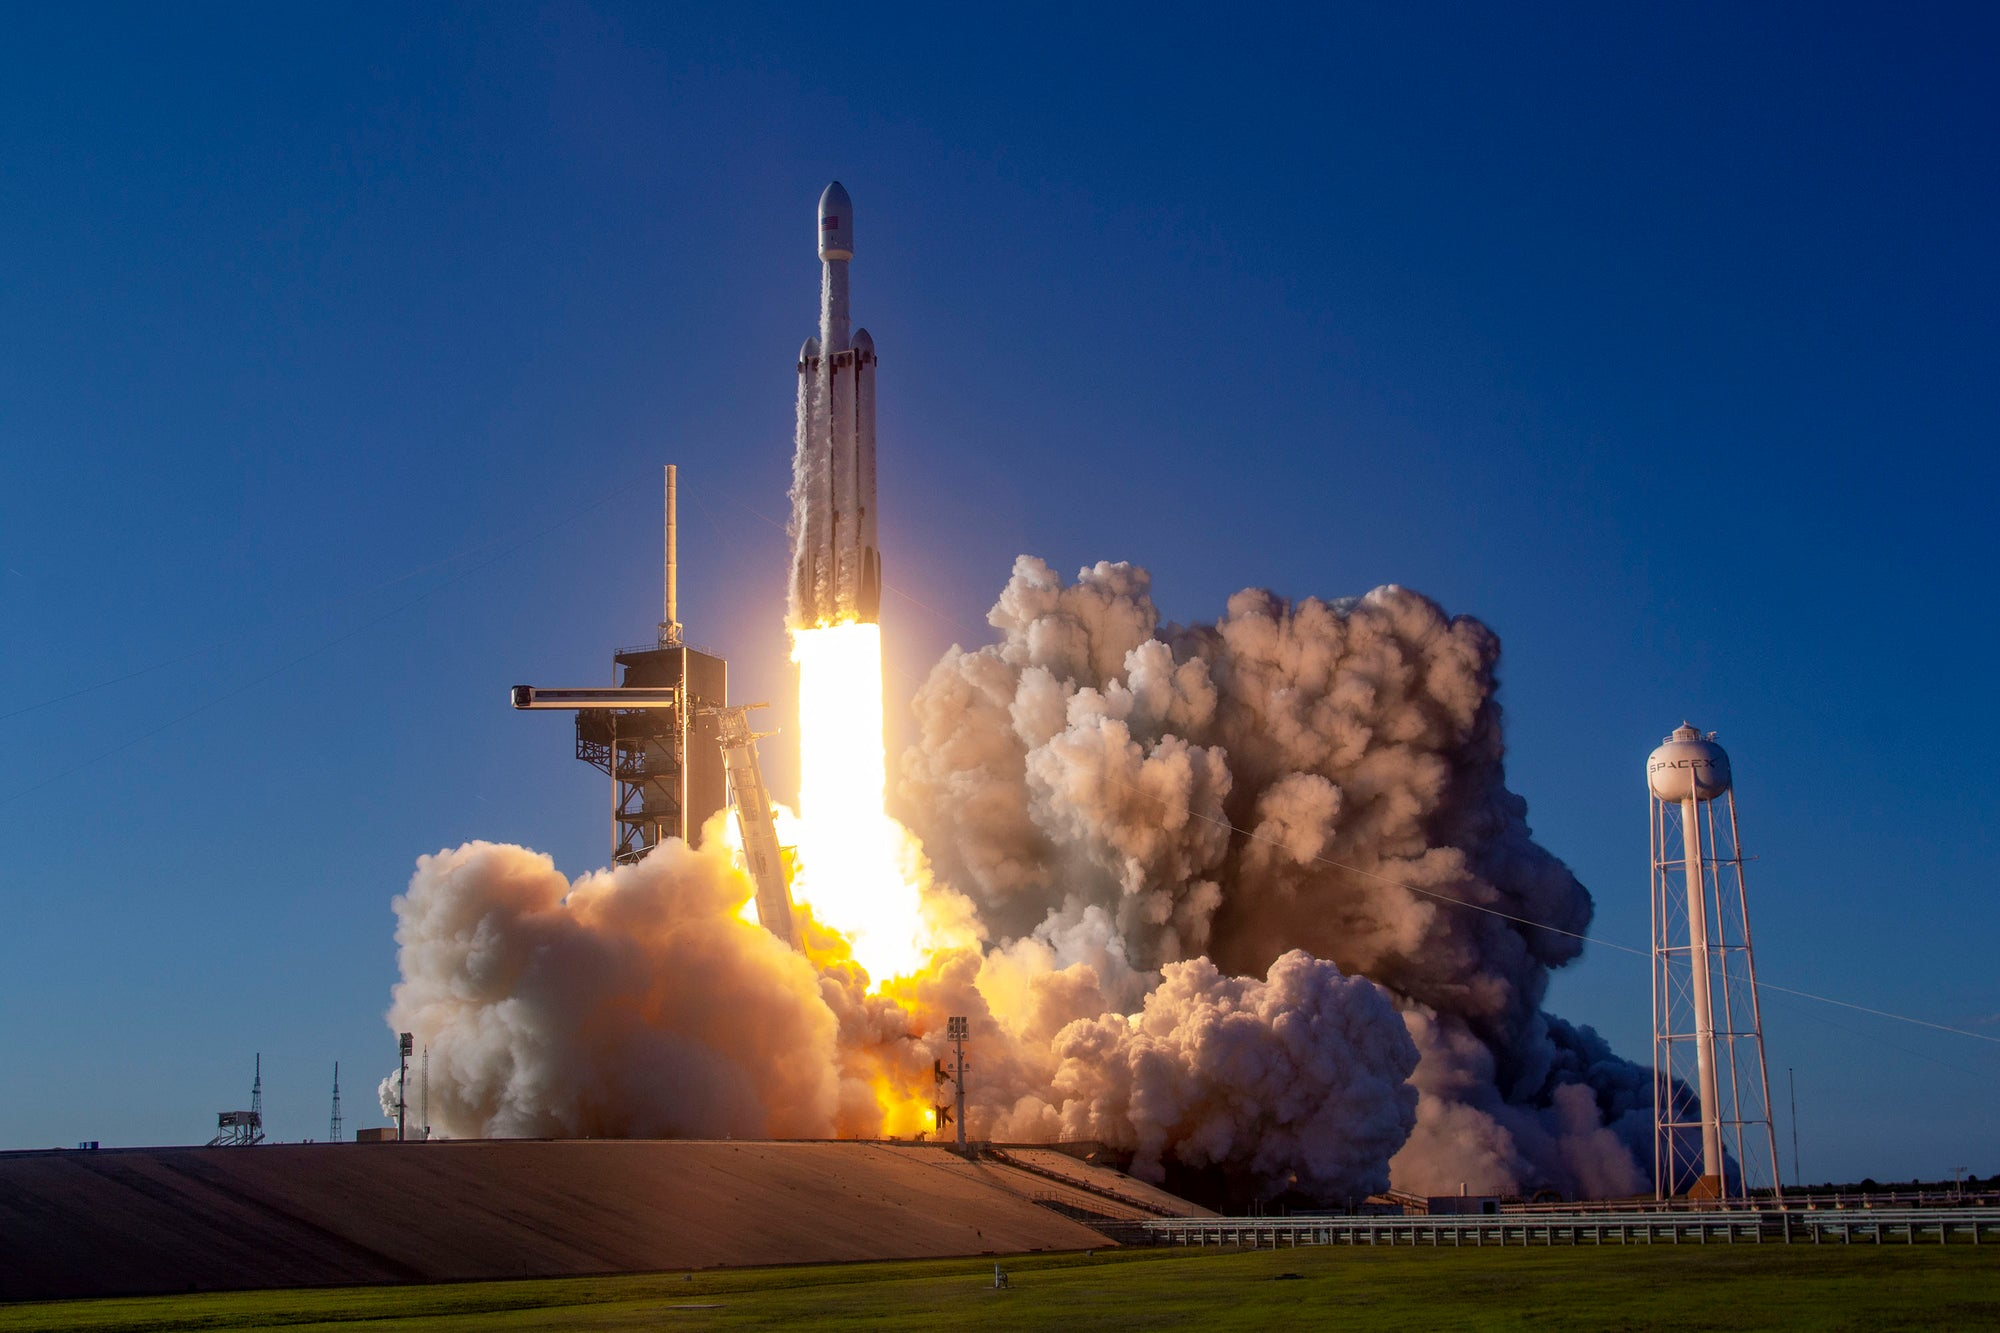 SpaceX's Falcon Heavy will launch the NASA Psyche Mission to study an asteroid between Mars and Jupiter